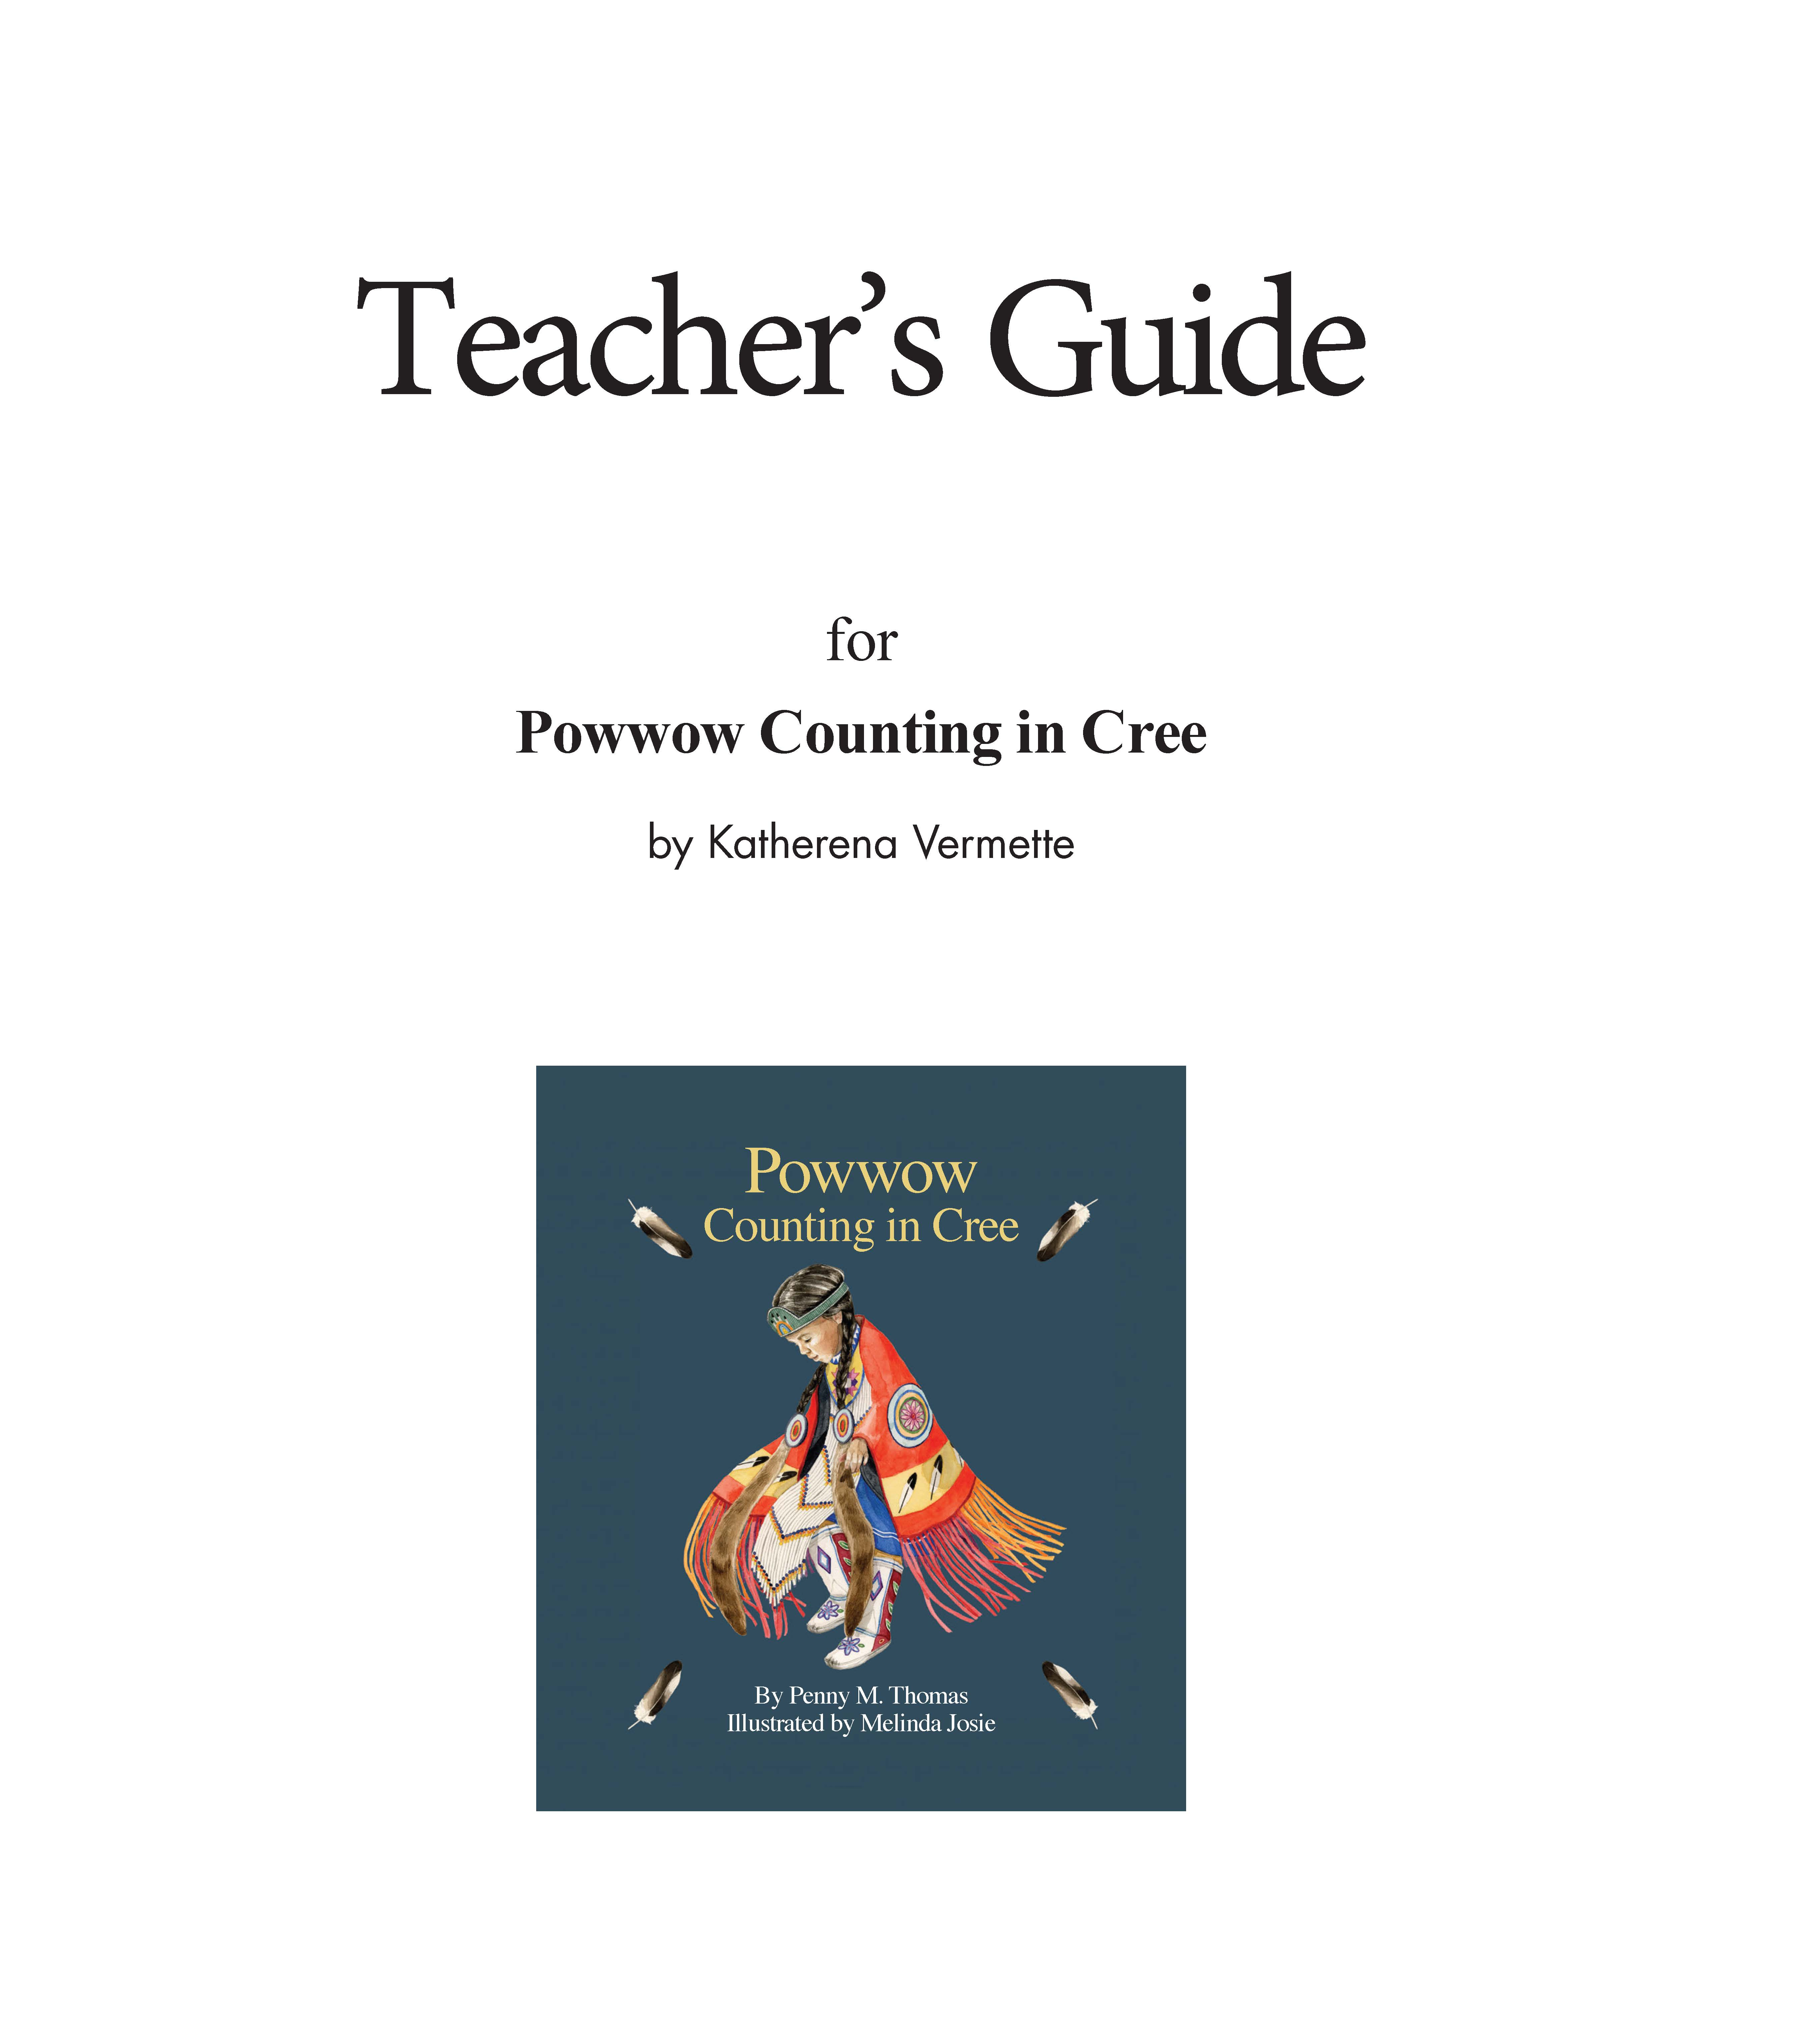 Teacher's Guide for Powwow Counting in Cree